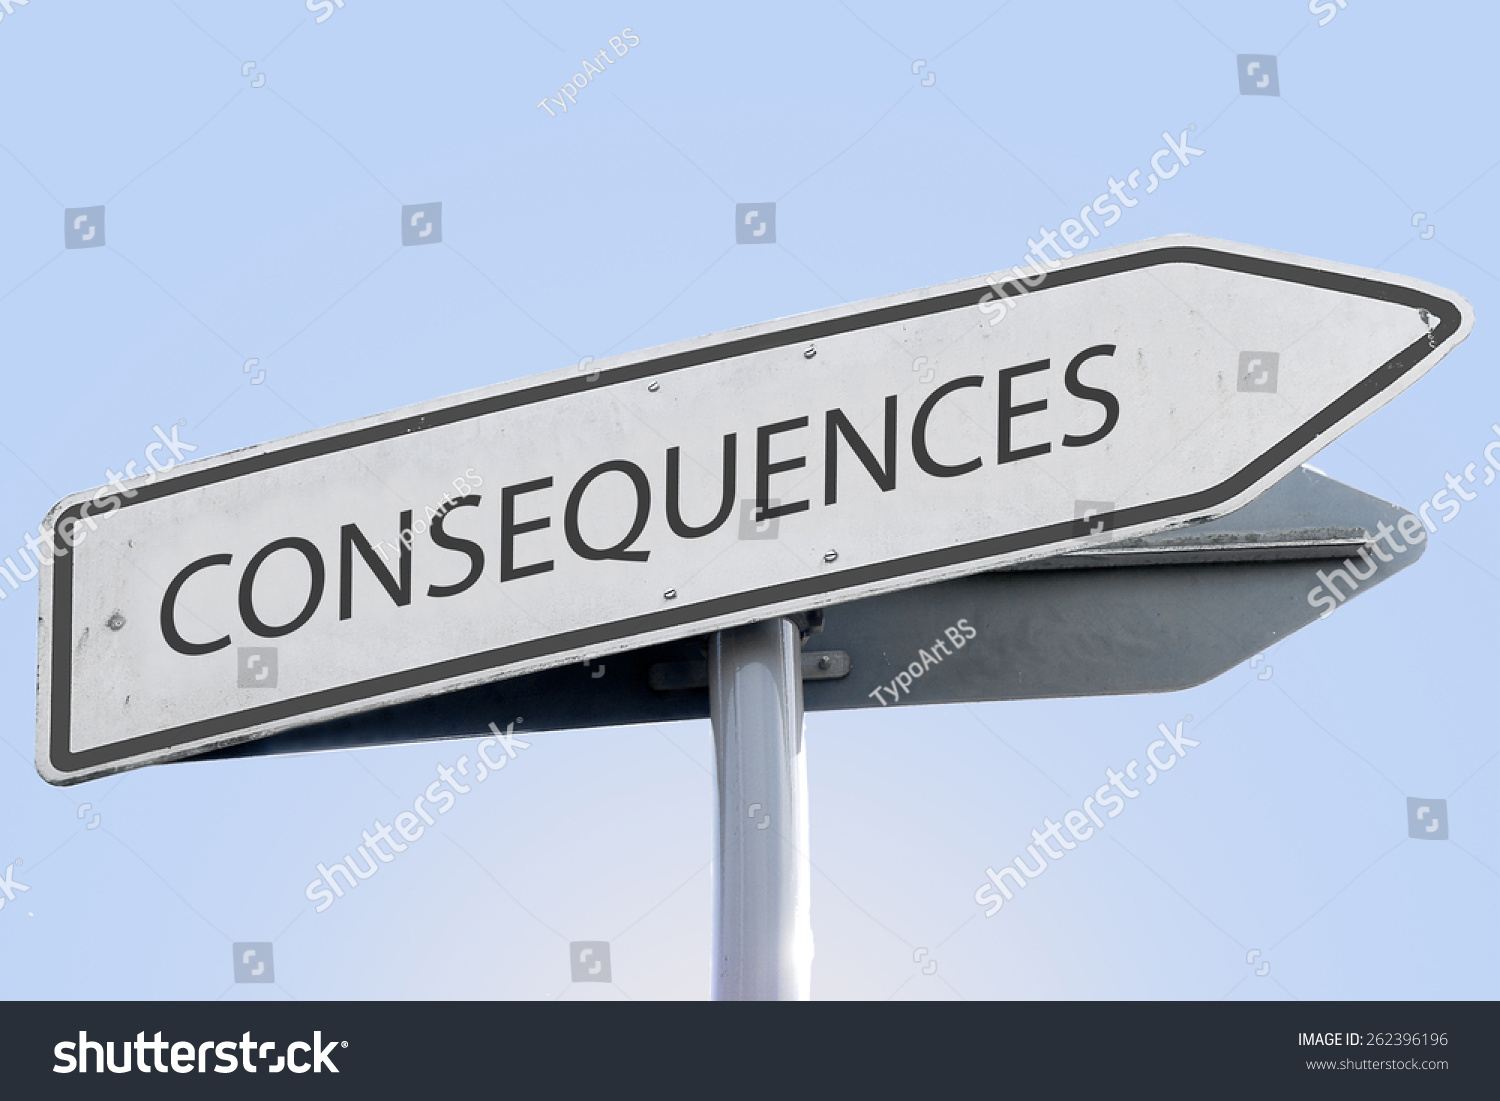 Consequences Word On Road Sign Stock Photo